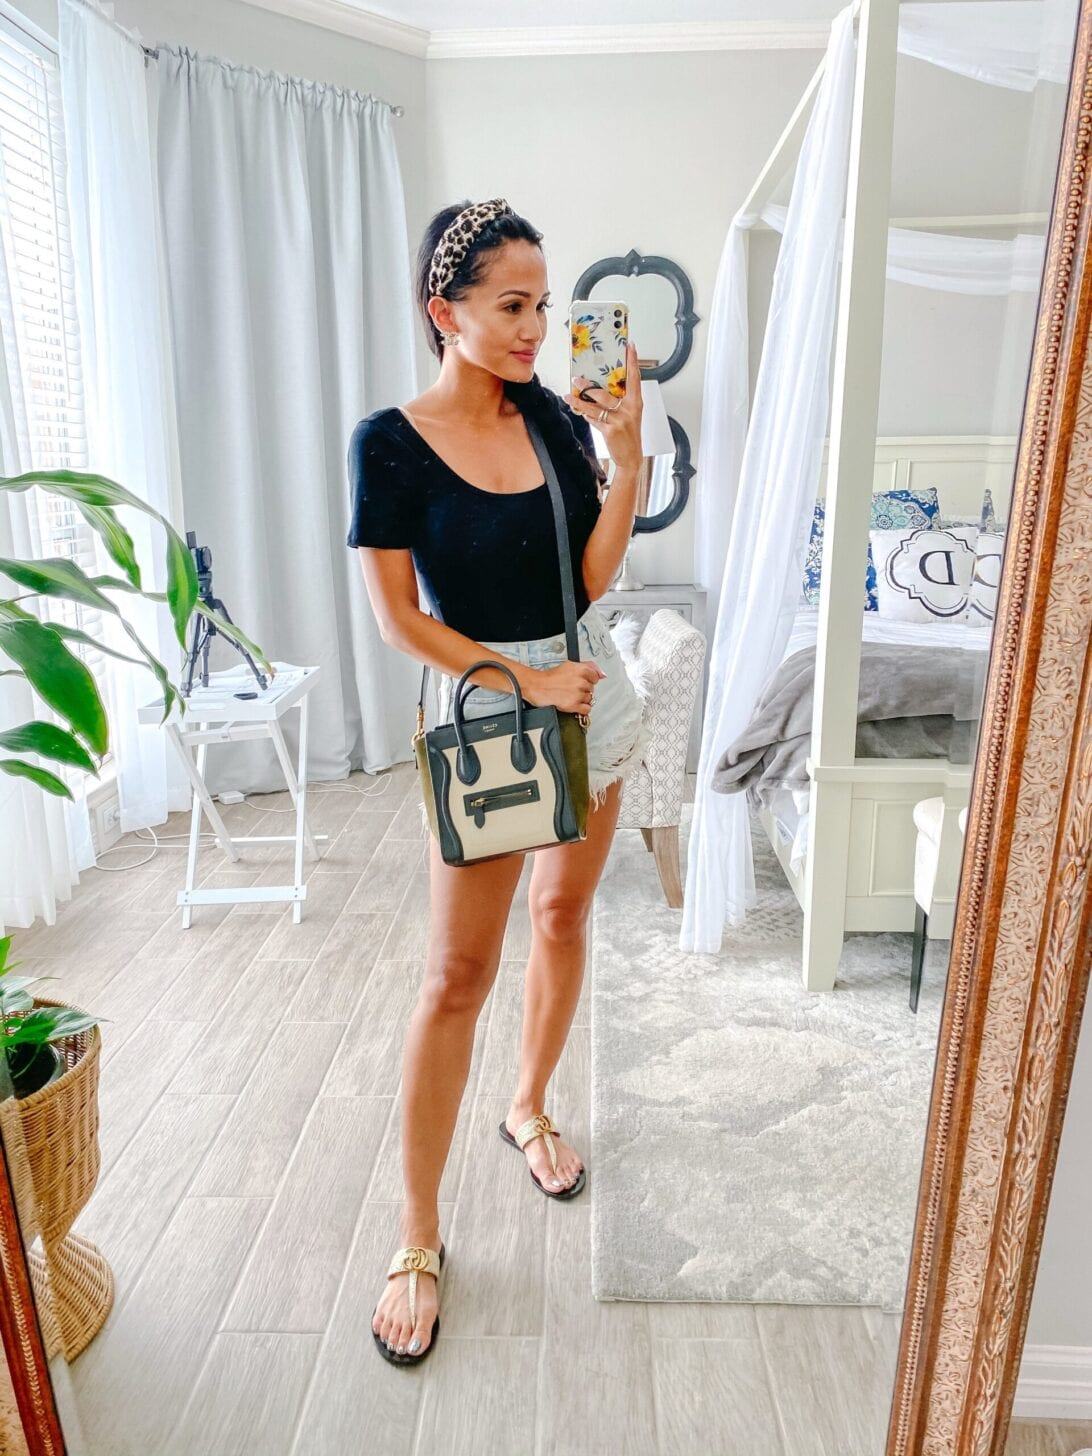 Celine crossbody bag review, Gucci sandals, black bodysuit